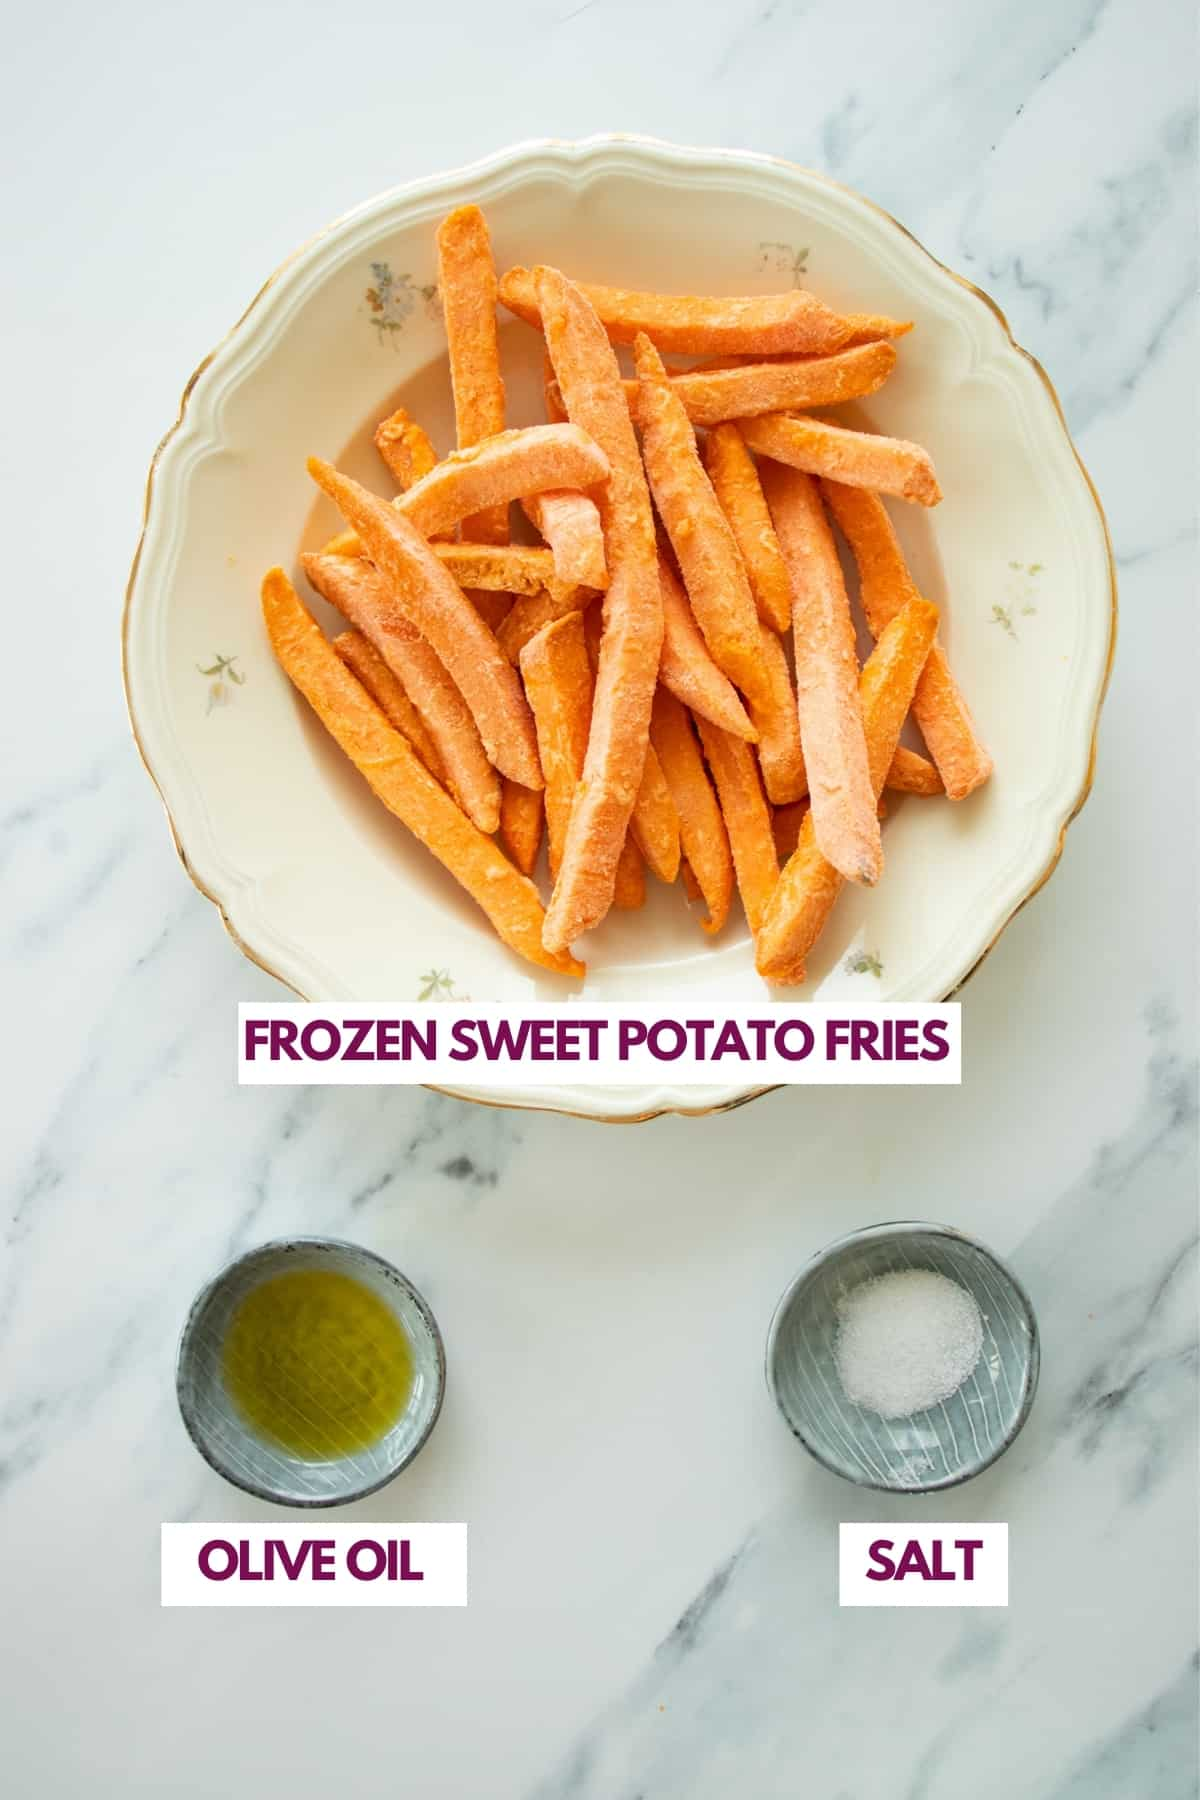 ingredients for making frozen sweet potatoes in the air fryer